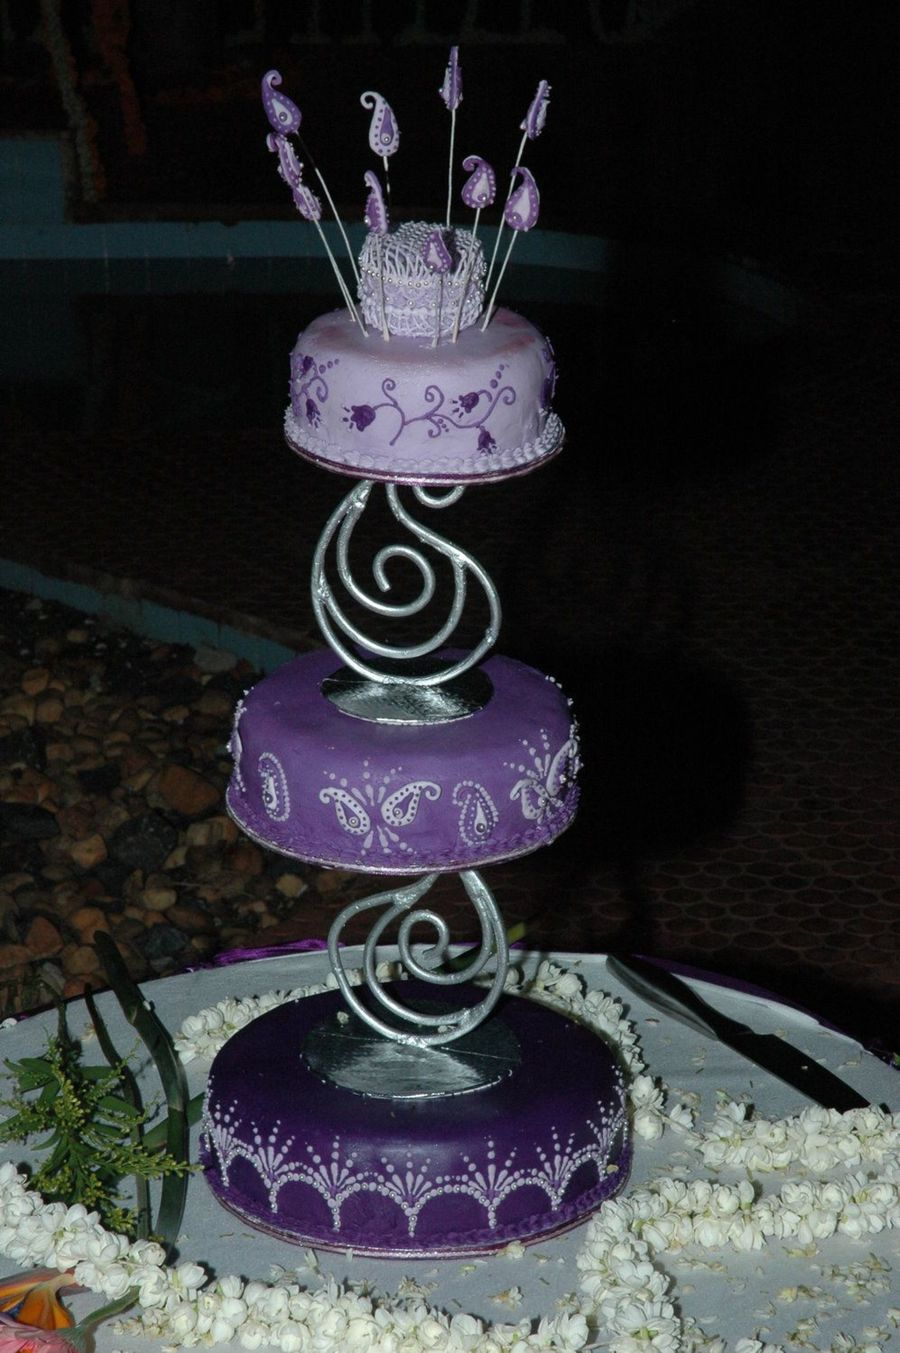 Purple_Wedding_1500By1500.jpg on Cake Central